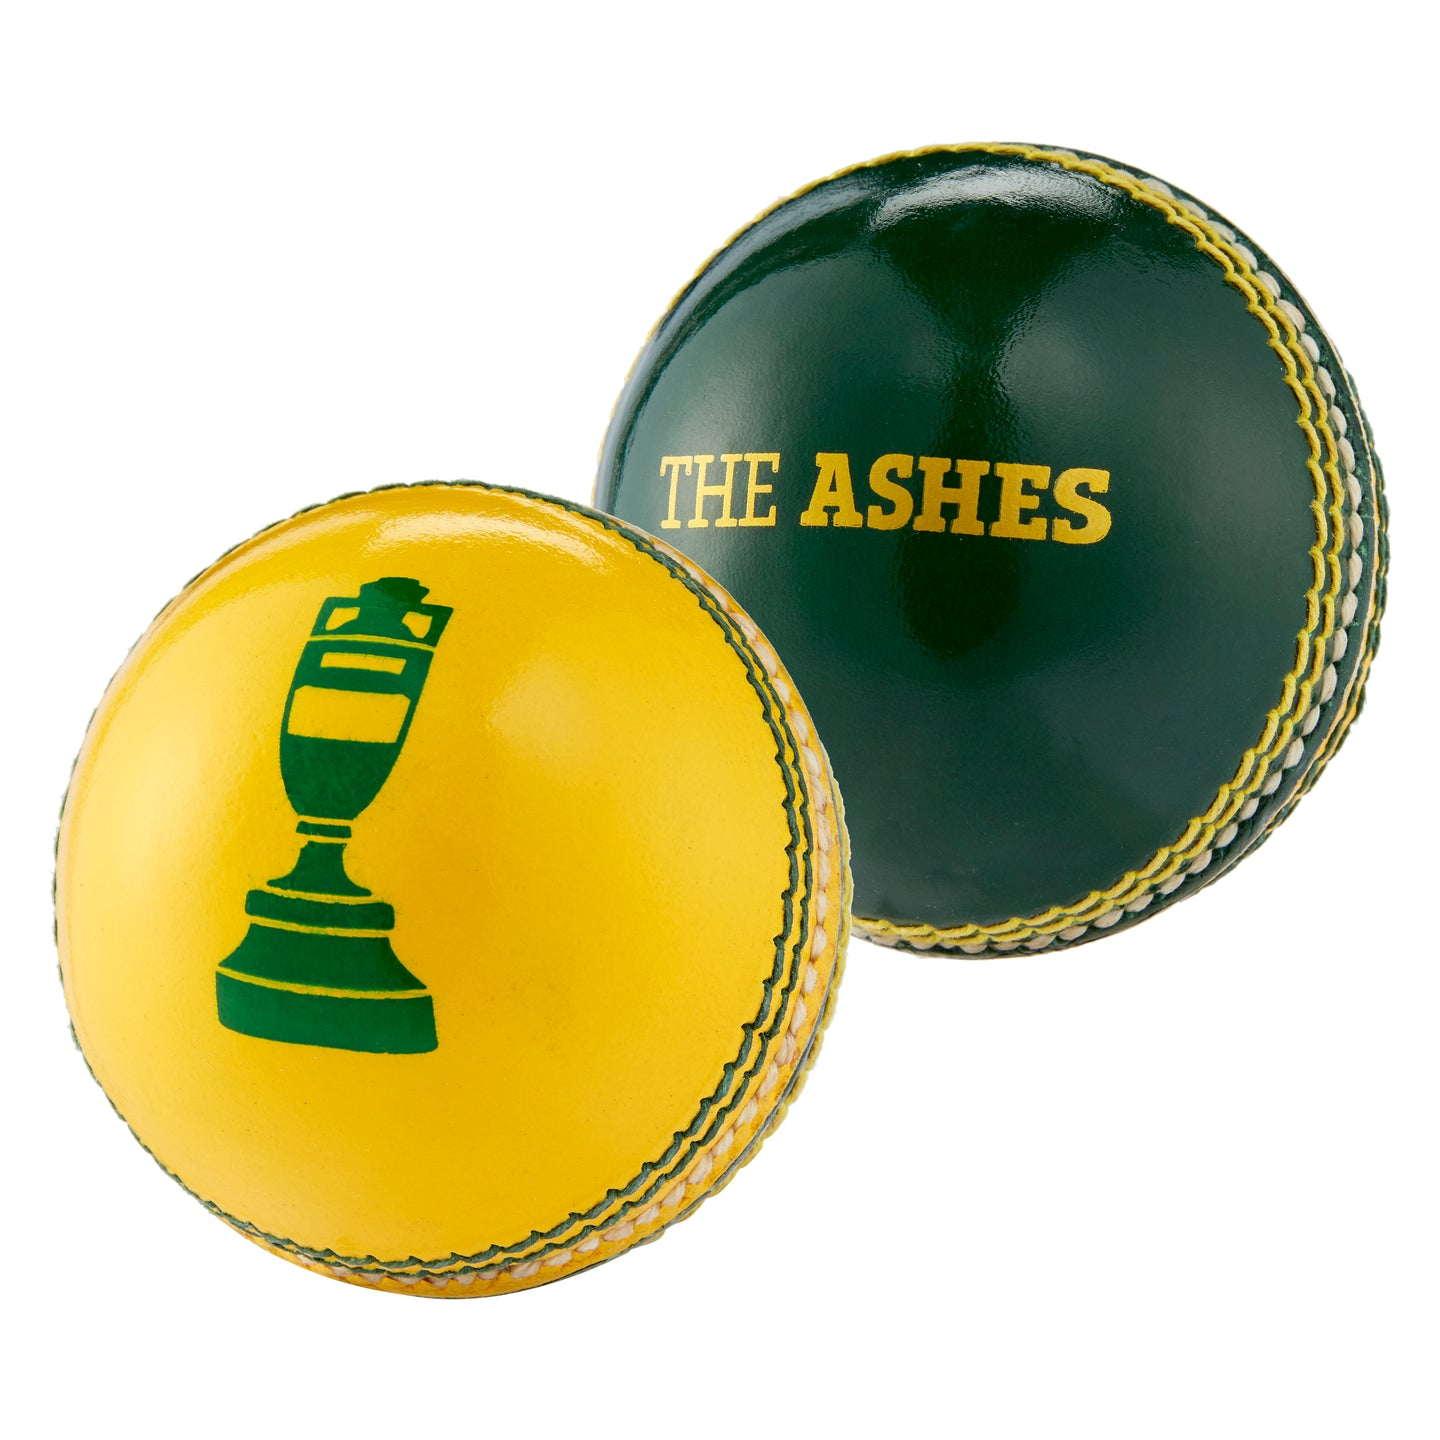 LORD'S ASHES URN SOUVENIR BALL GREEN/YELLOW